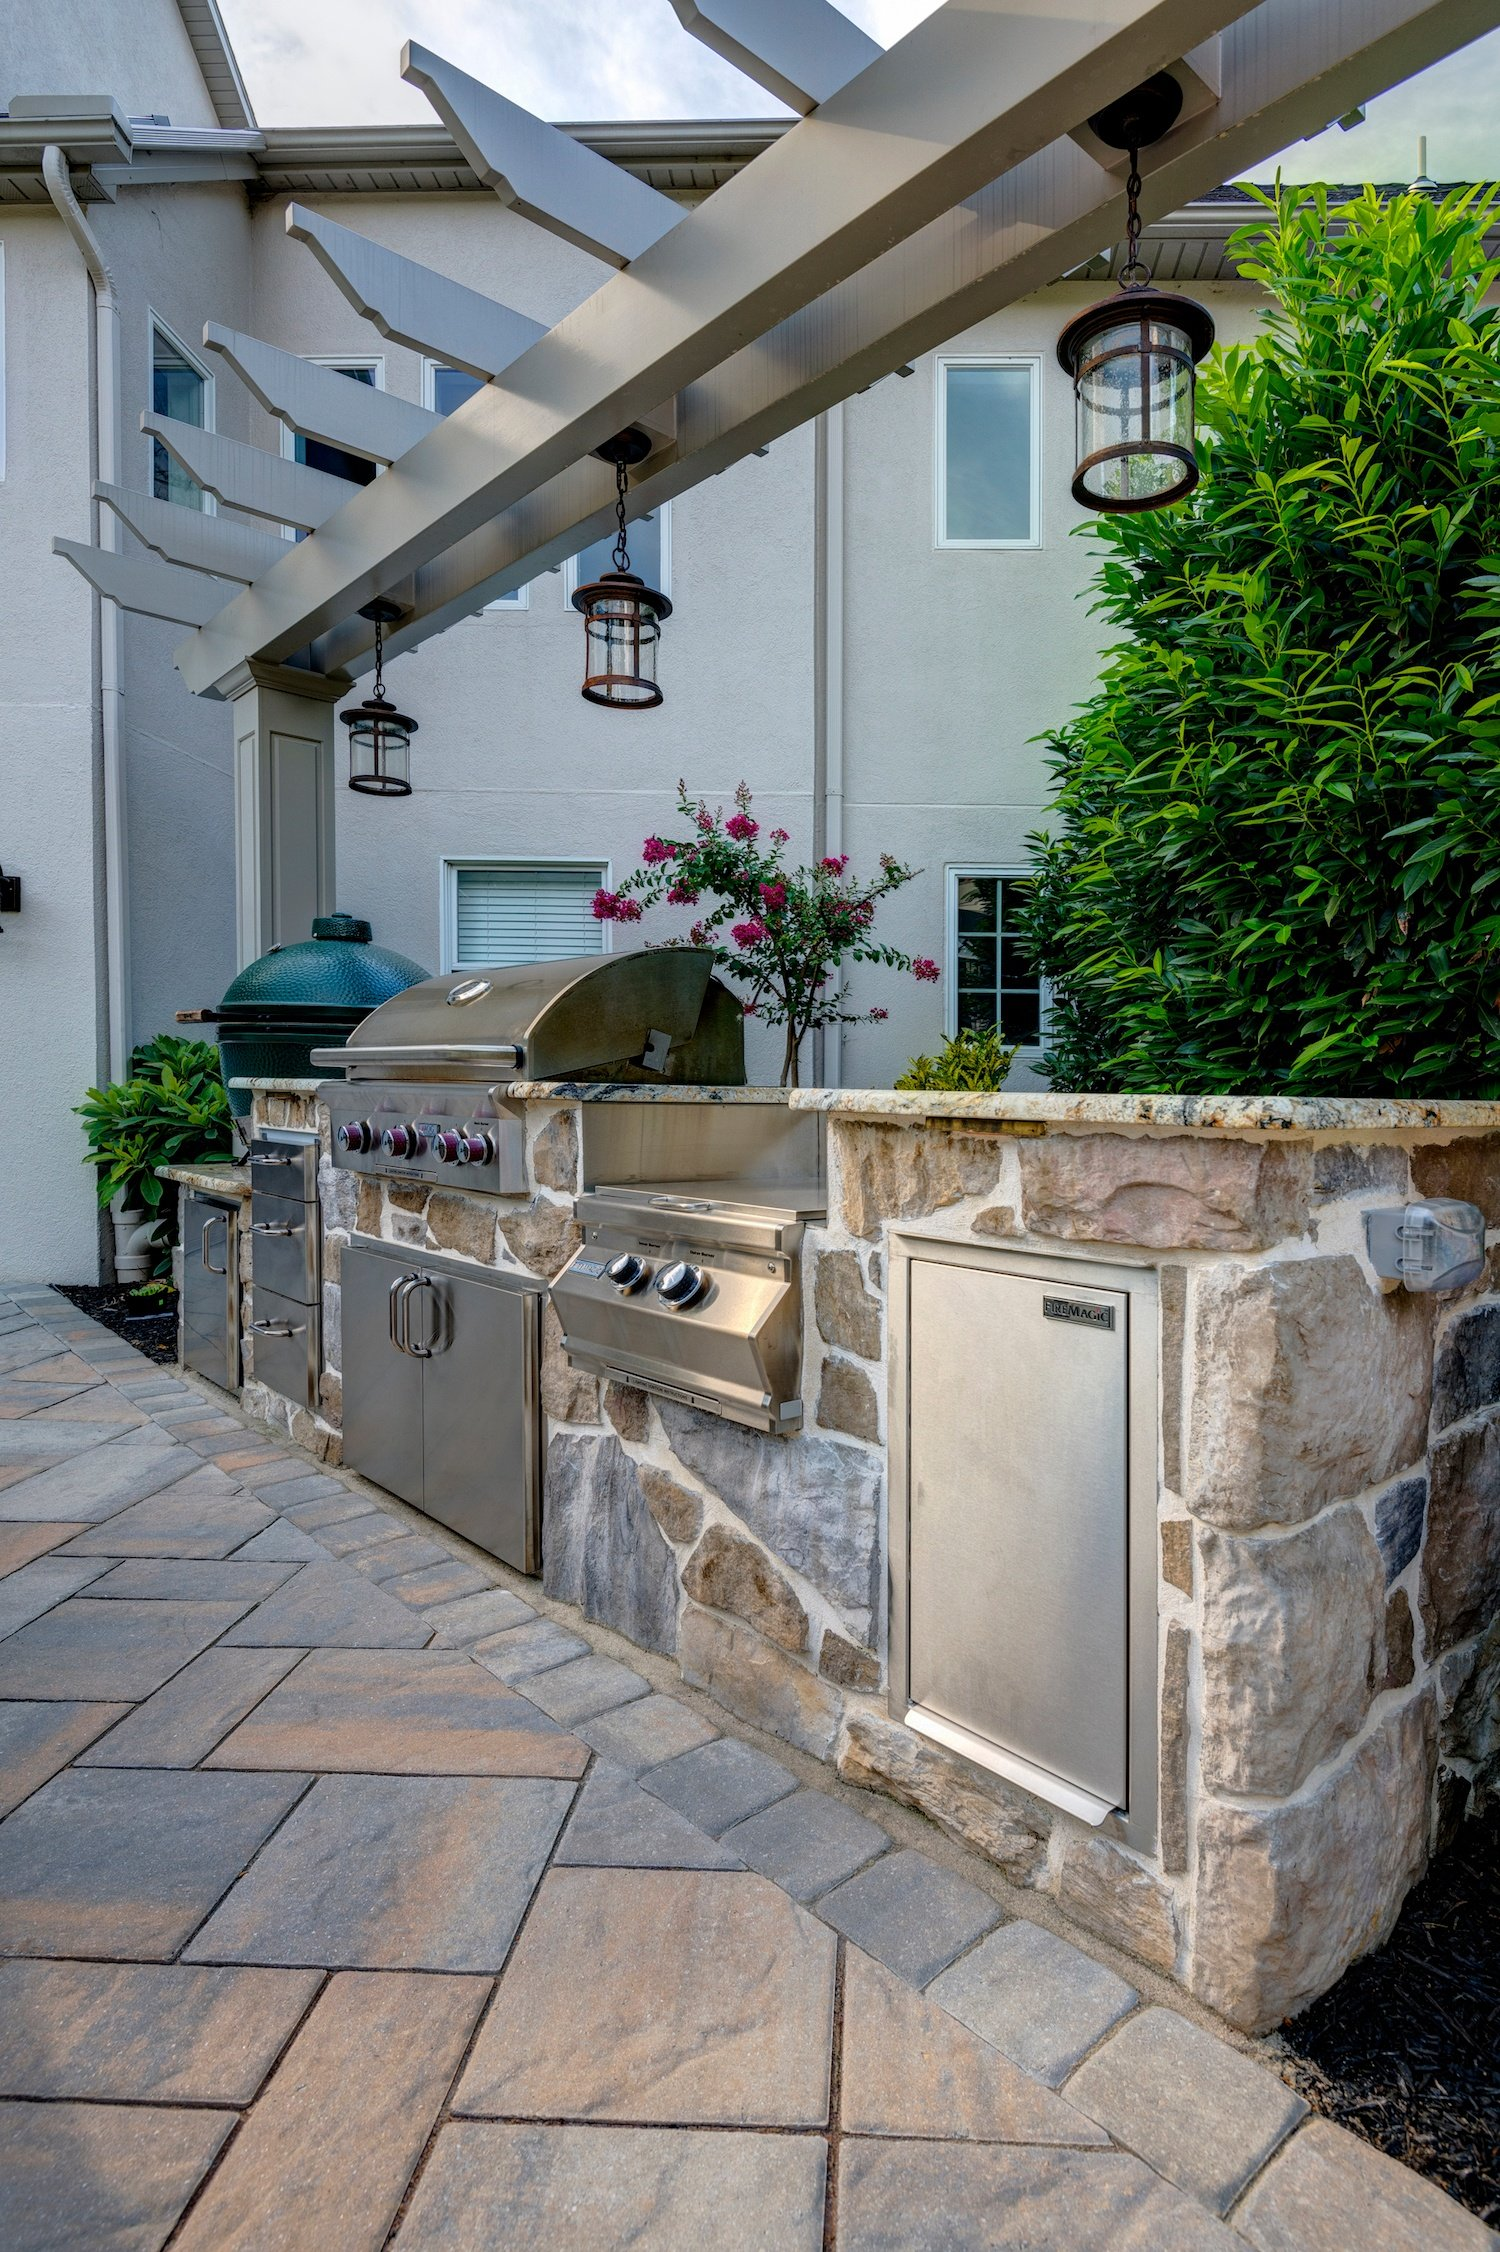 outdoor kitchen appliances in backyard patio